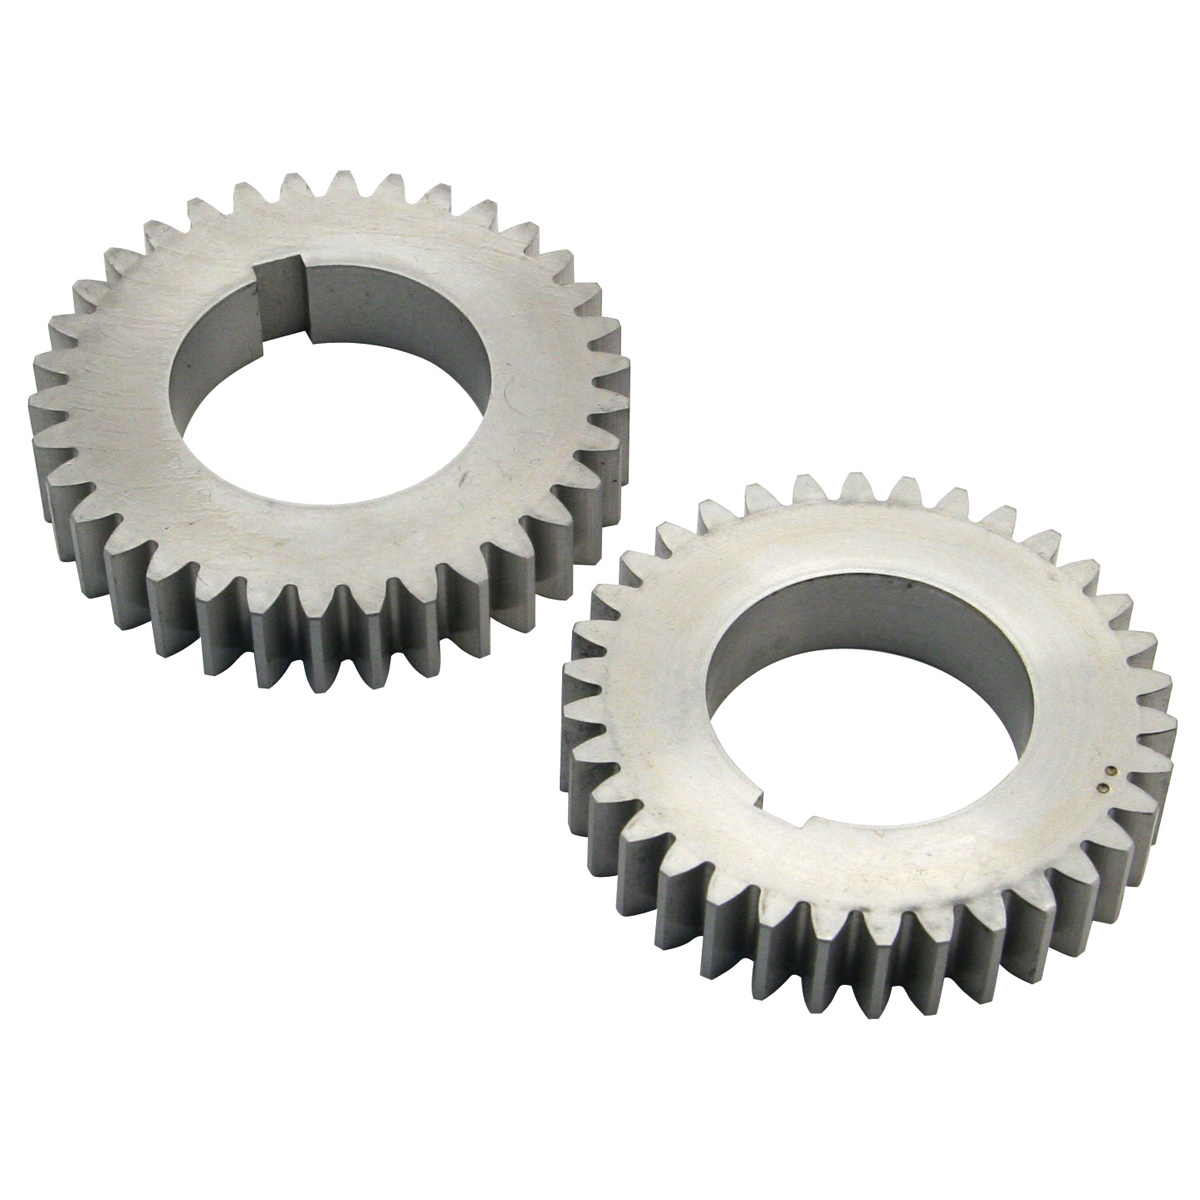 S&S Cycle Cam Drive Gear set